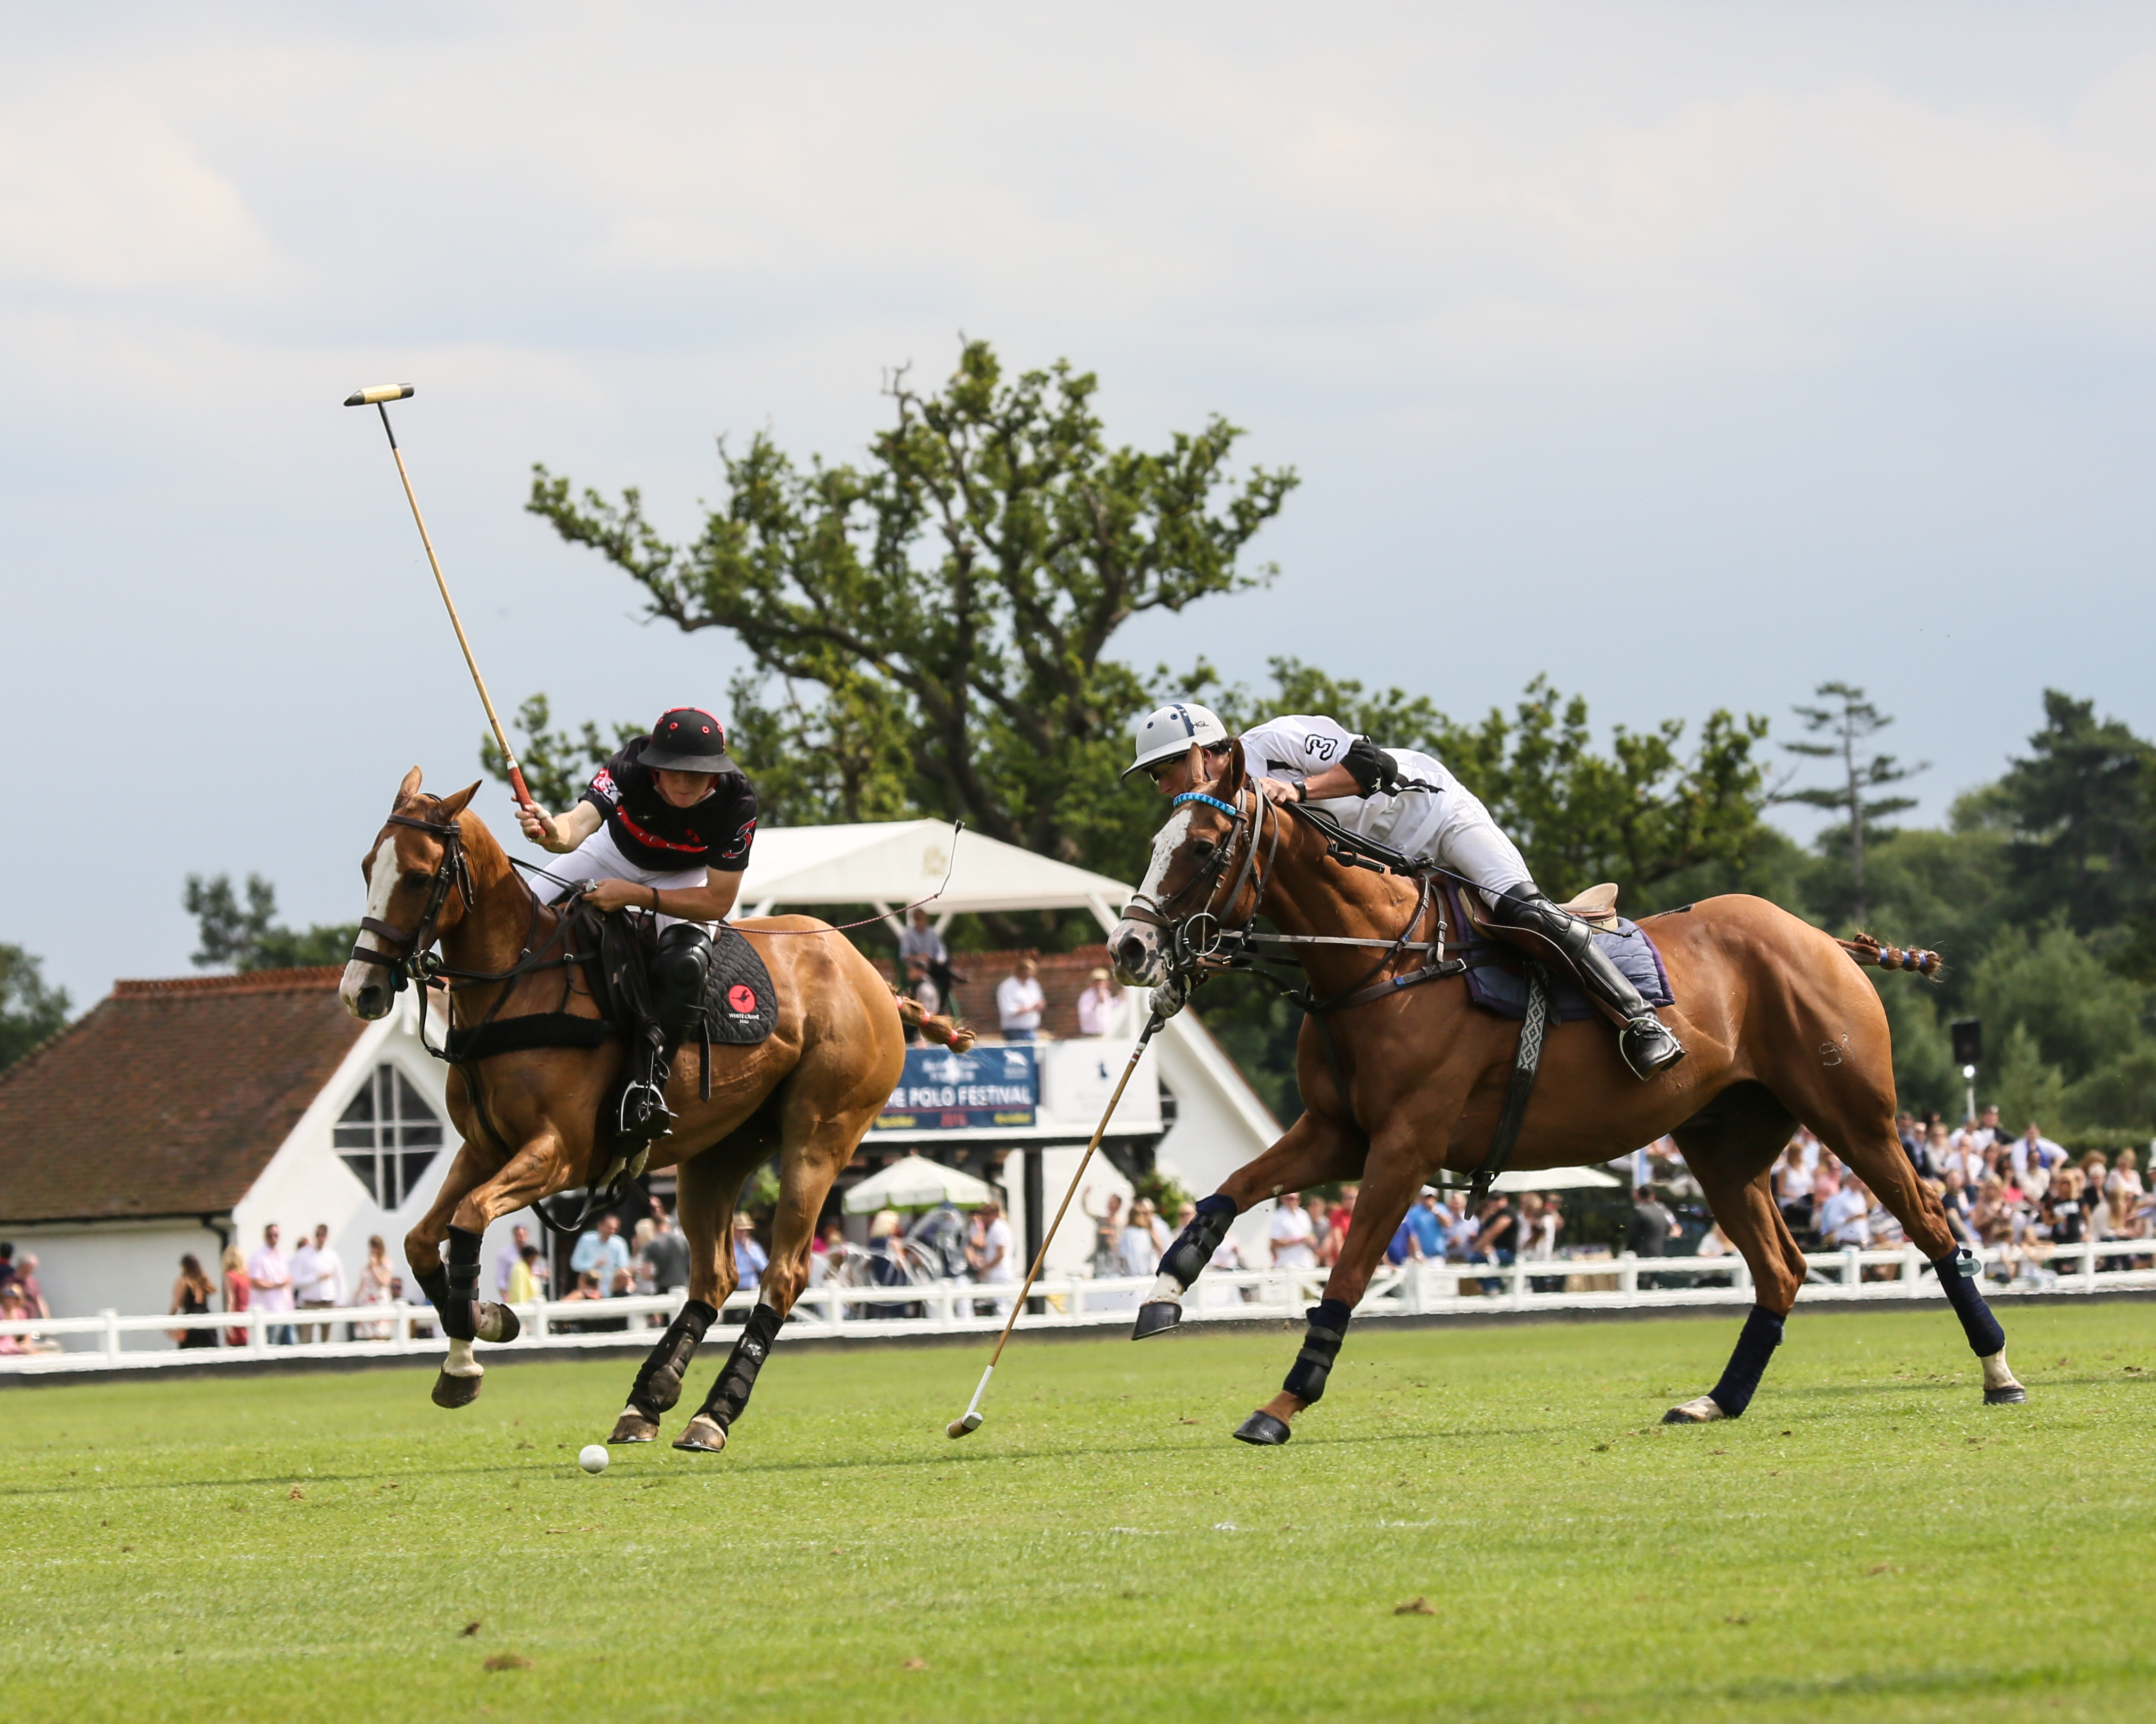 Royal County of Berkshire Polo Club - Wikipedia